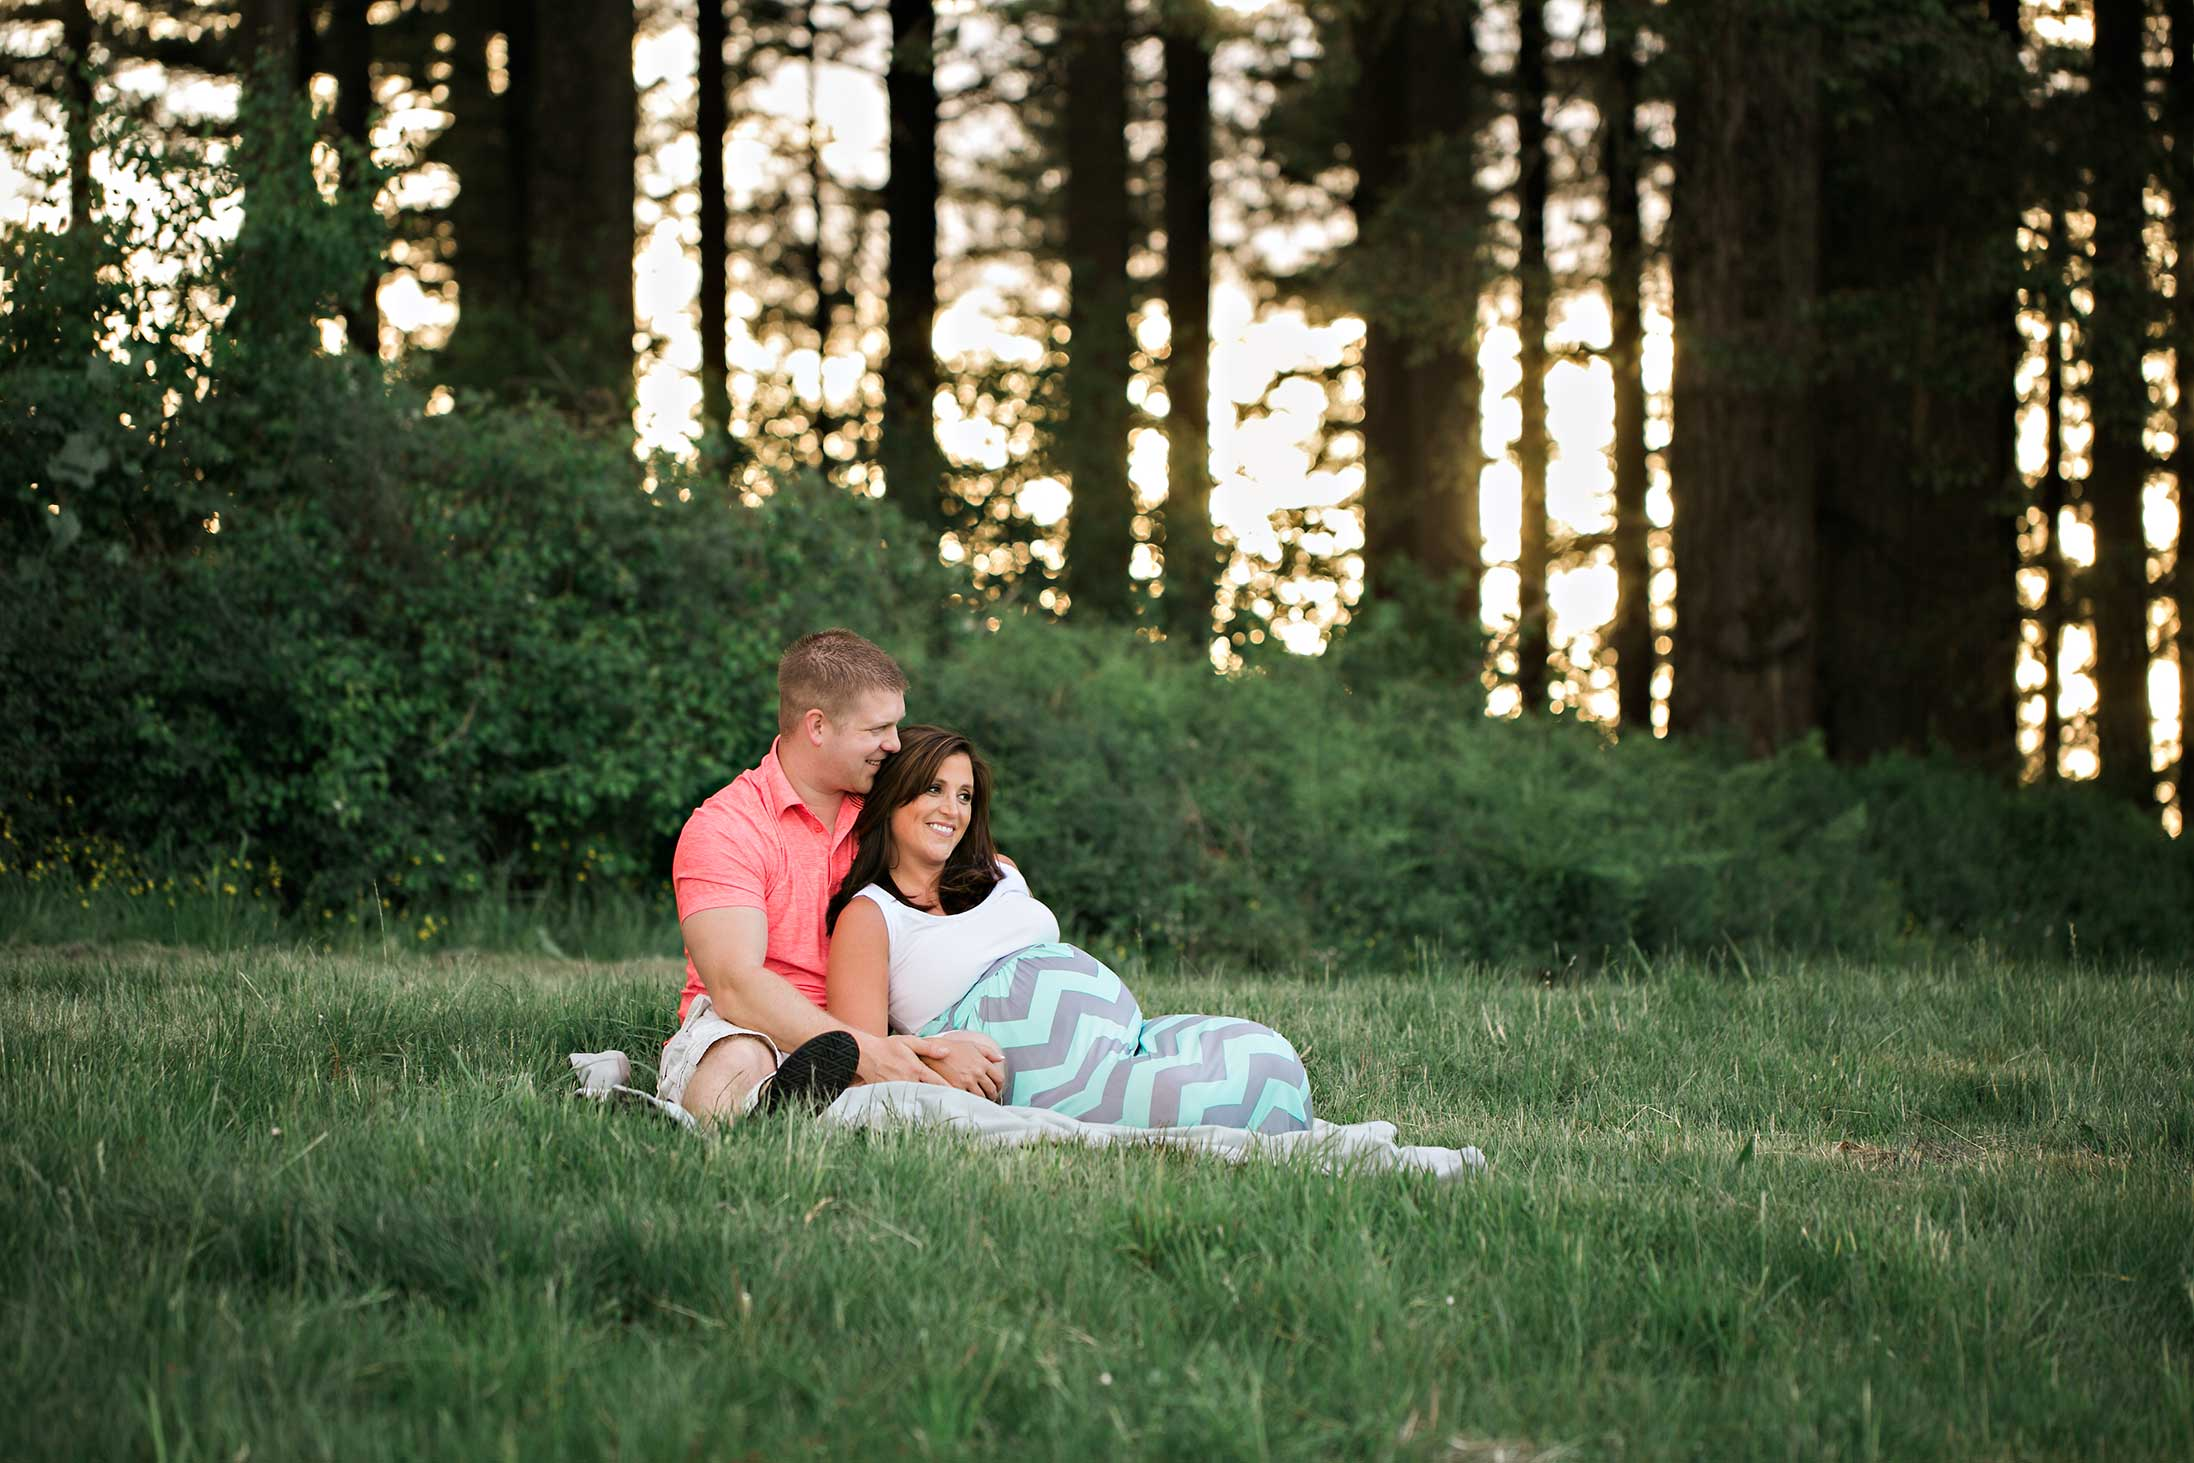 grassy-park-maternity-cuddles-forest-sunshine-pregnancy